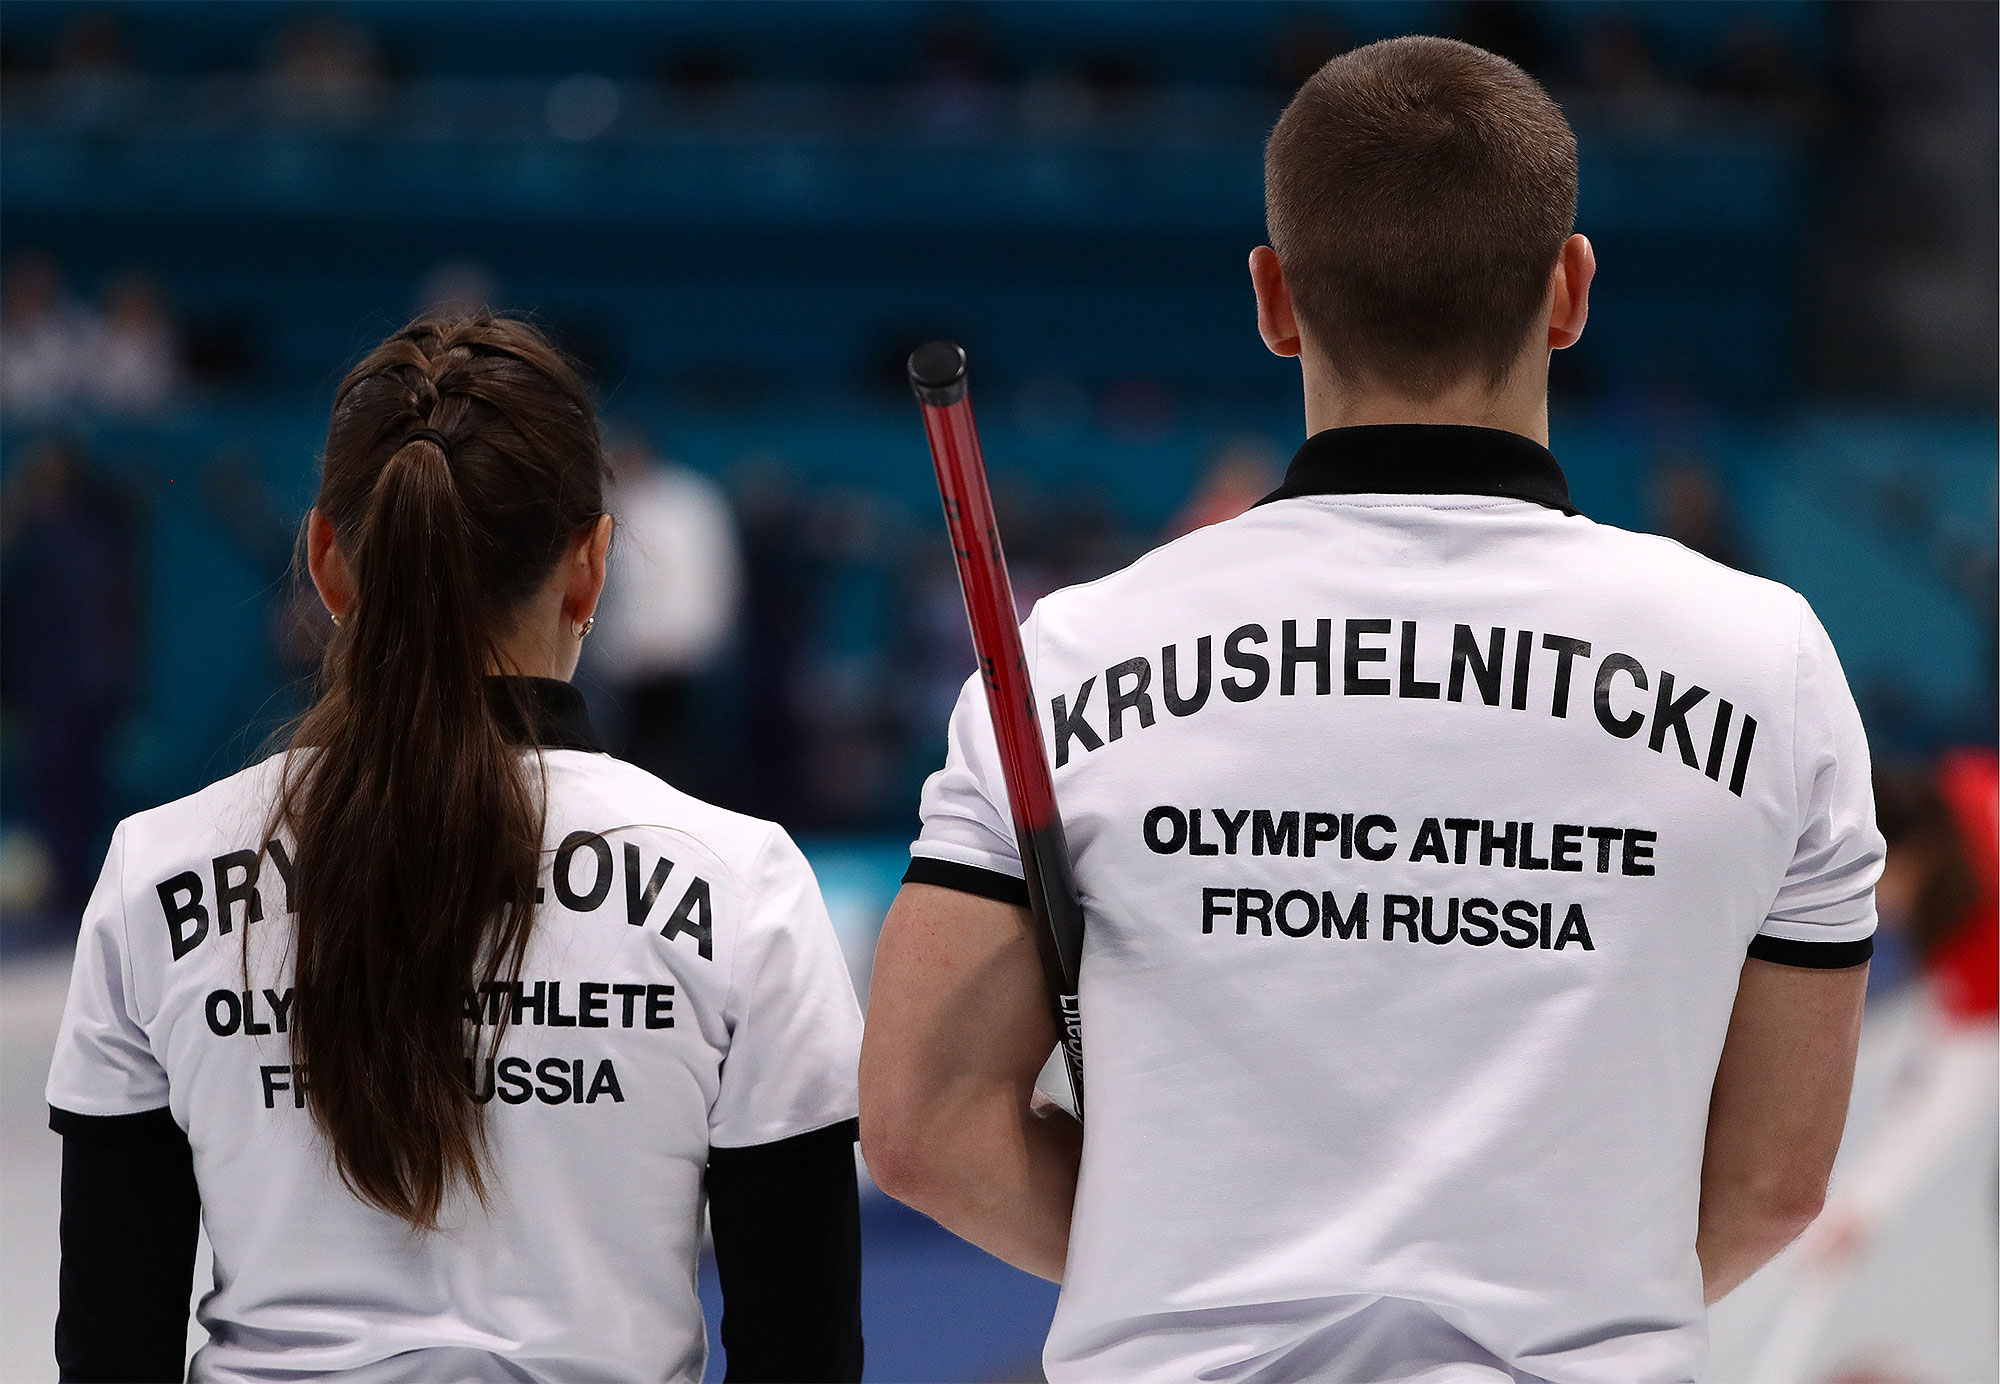 2018 Winter Olympic Games: Curling, Mixed Doubles, United States 9 - 3 Russia